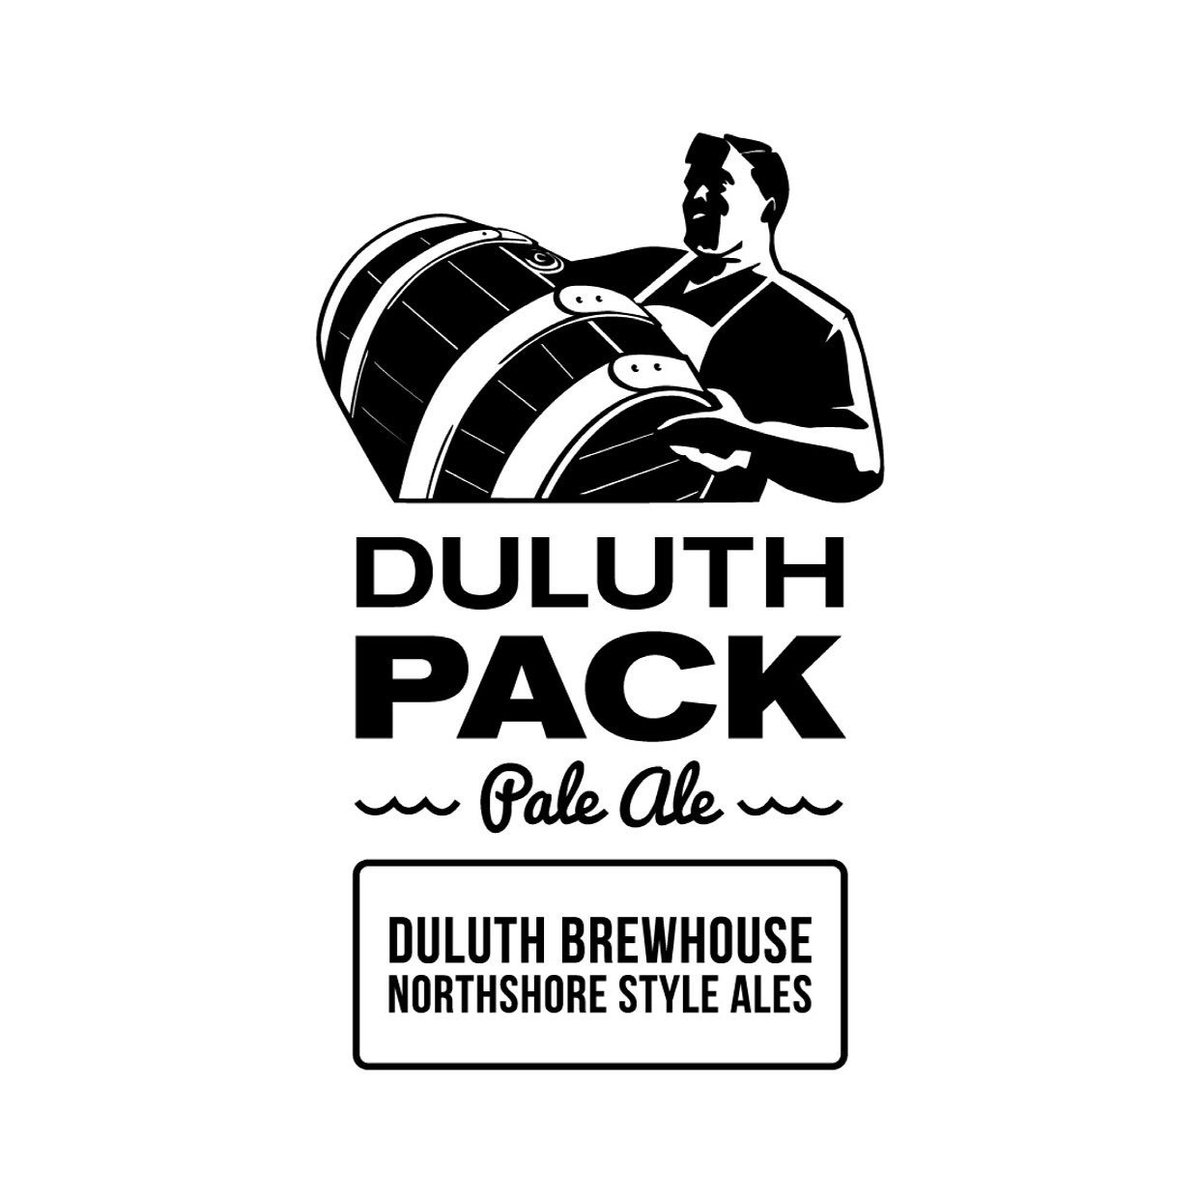 We are ecstatic to finally announce that #duluthpack has a Pale Ale crafted by @DuluthBrewhouse! https://t.co/zCbucO7e4z